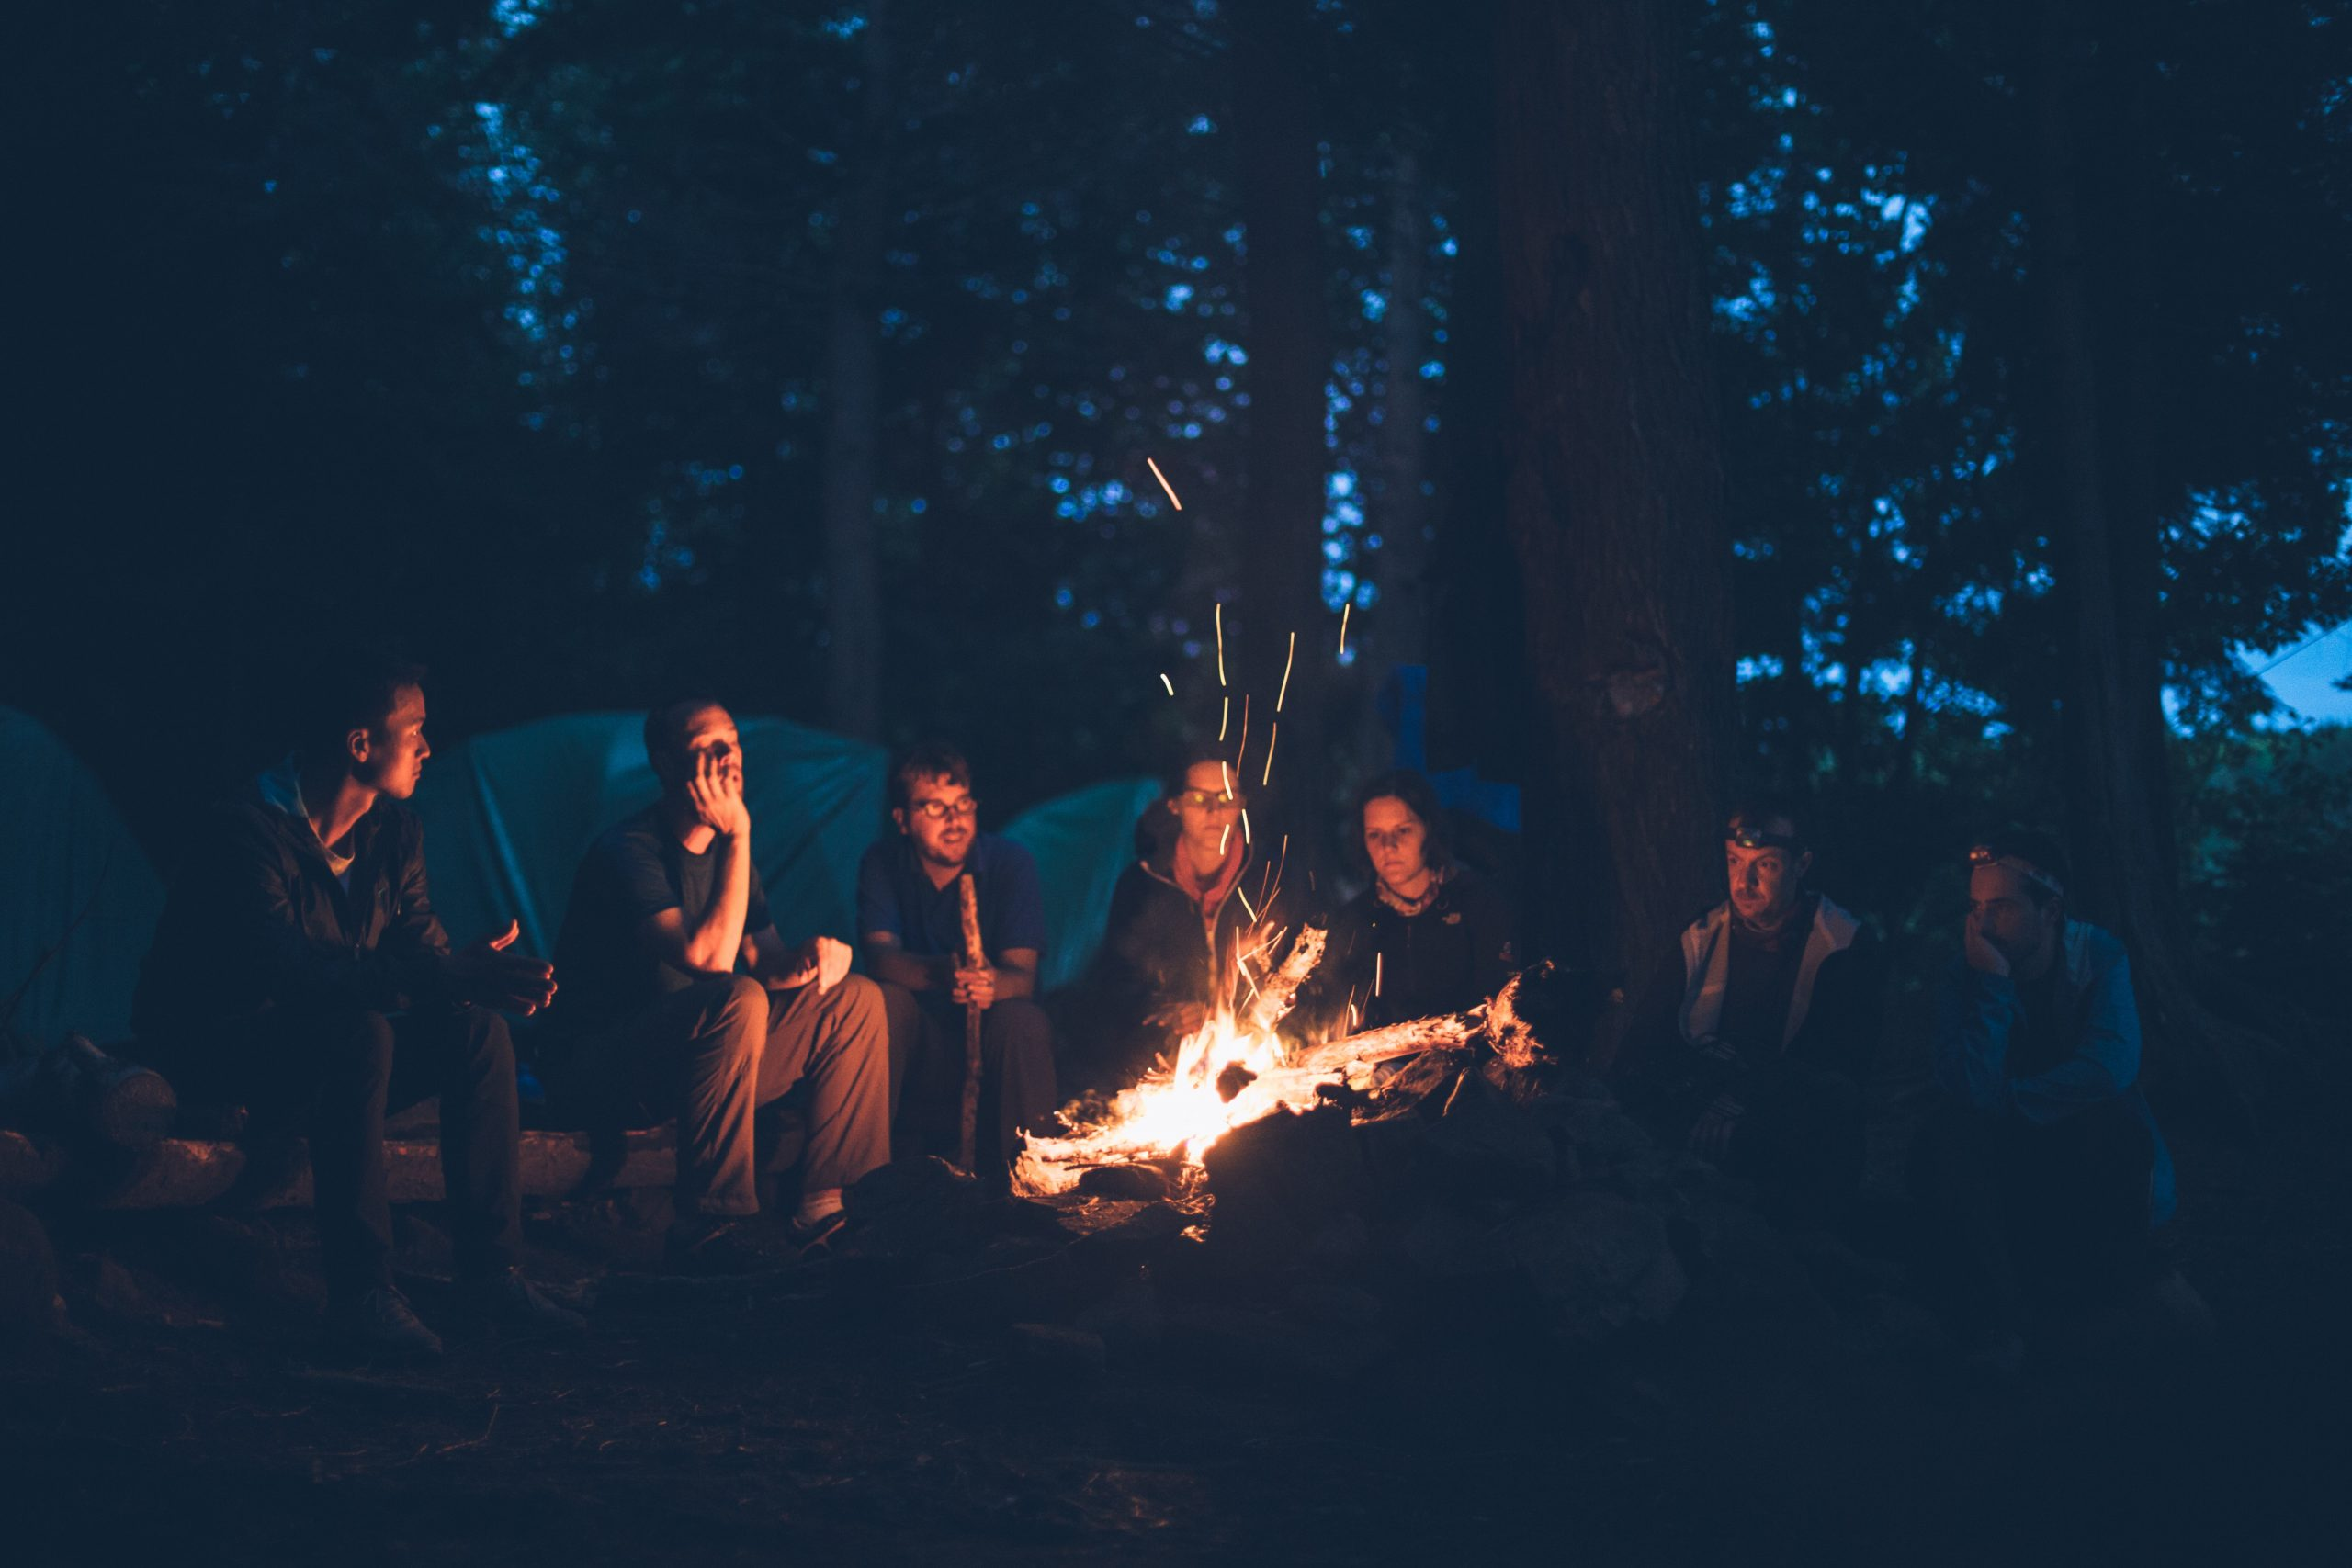 Omage shows young peole sat around a camp fire with a night sky backdrop.